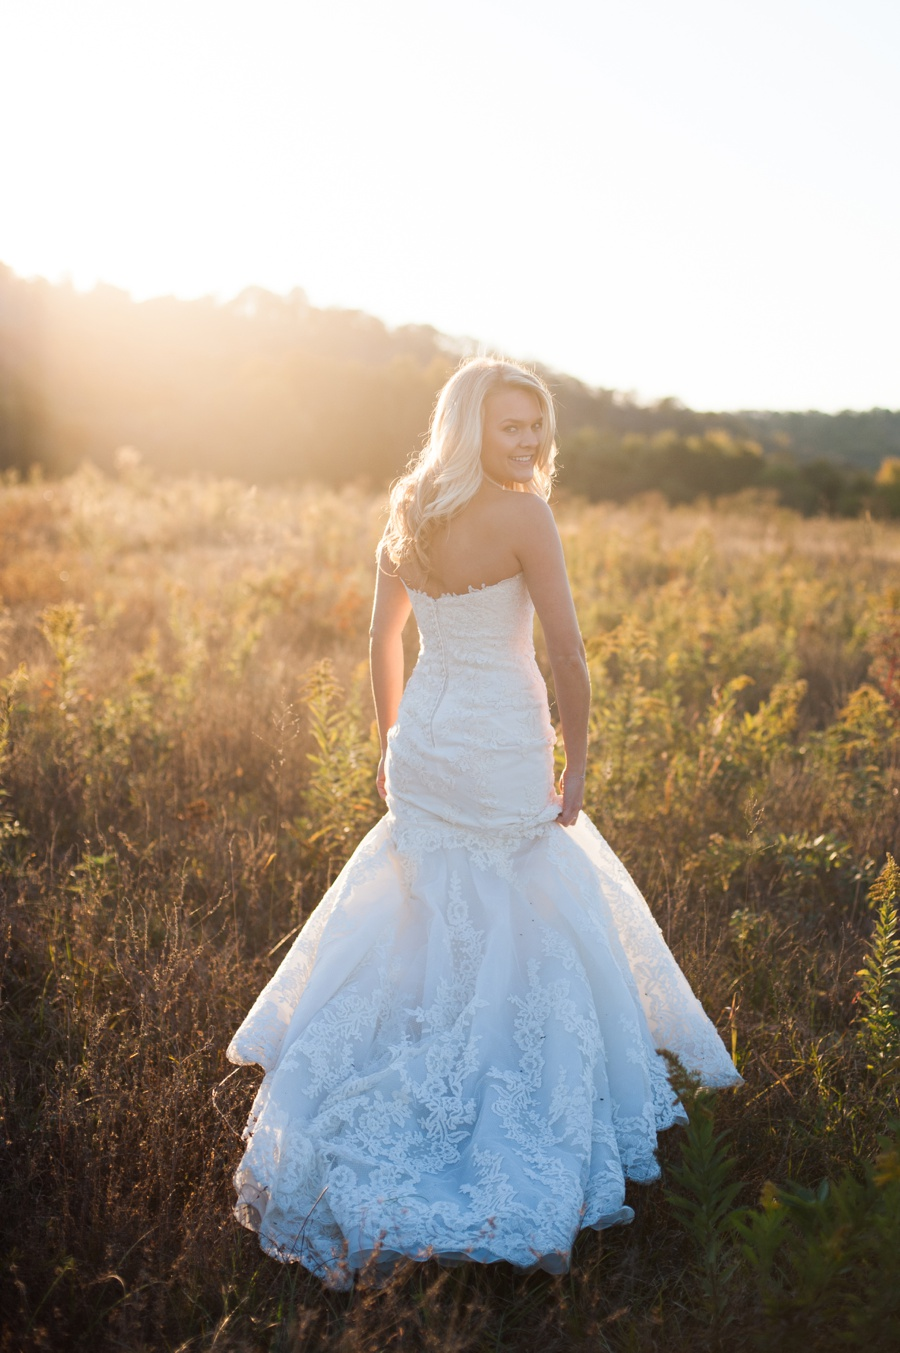 kentuckyfieldwedding_0858